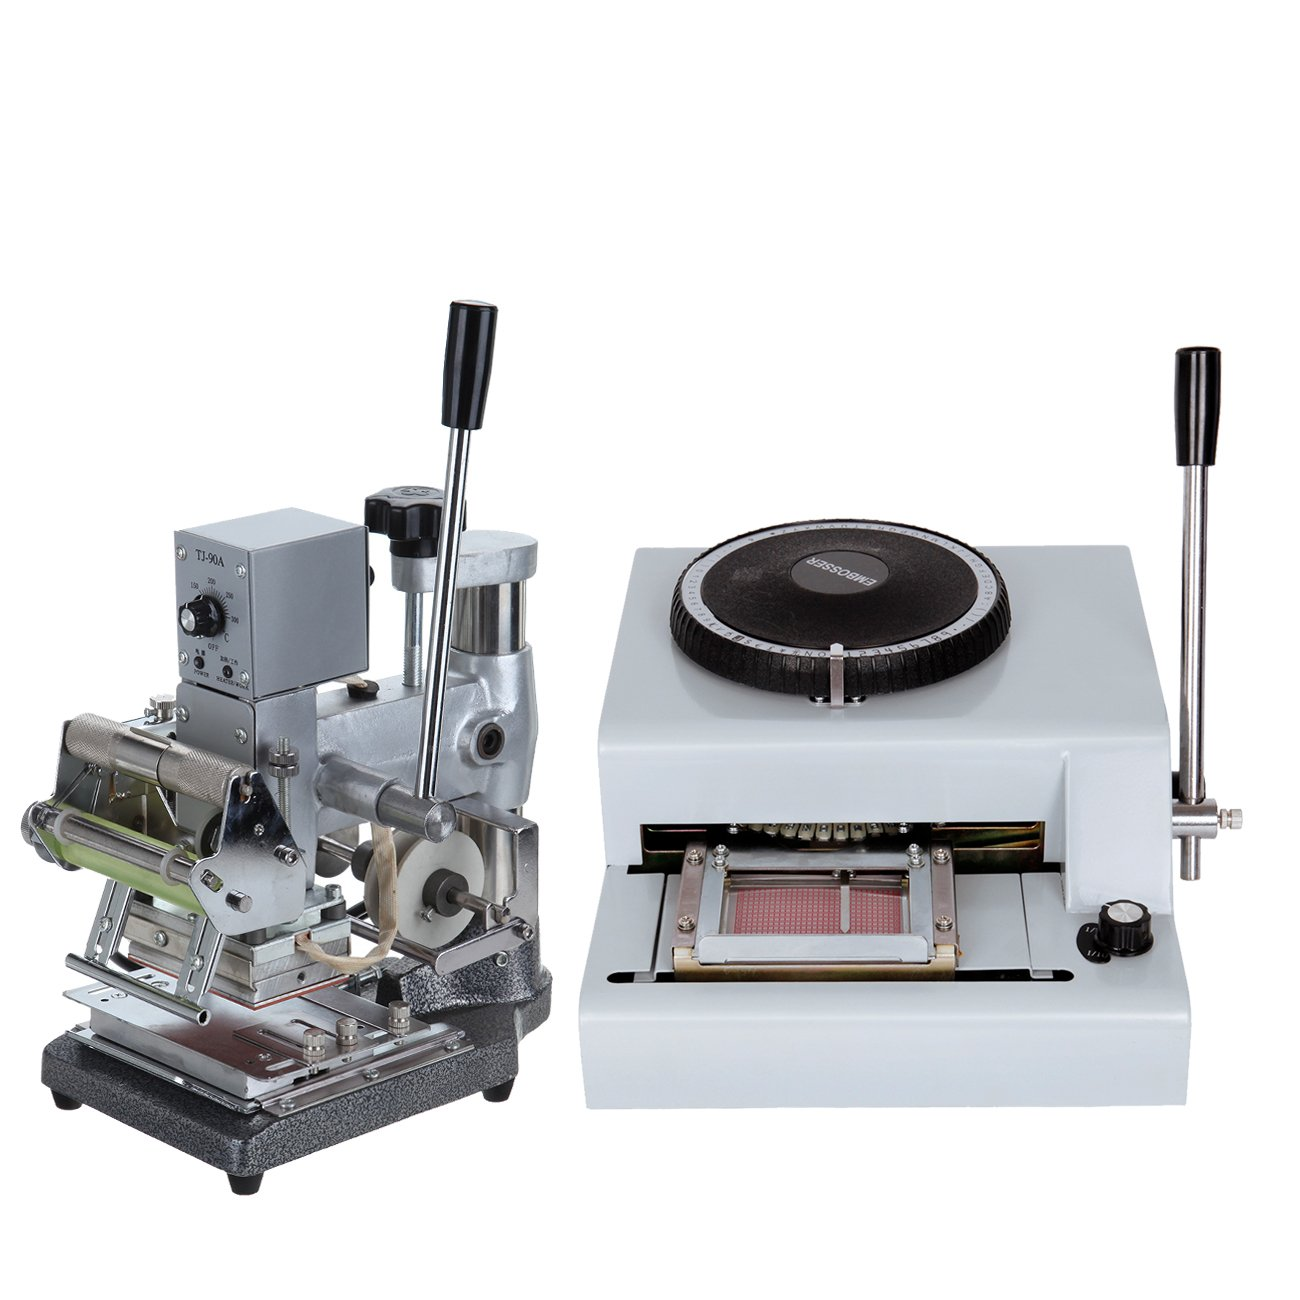 Iglobalbuy 72 Characters PVC Card Embosser Embossing Machine With Hot Foil Stamping Machine (Embrosser+Hot Foil Stamping Tipper)